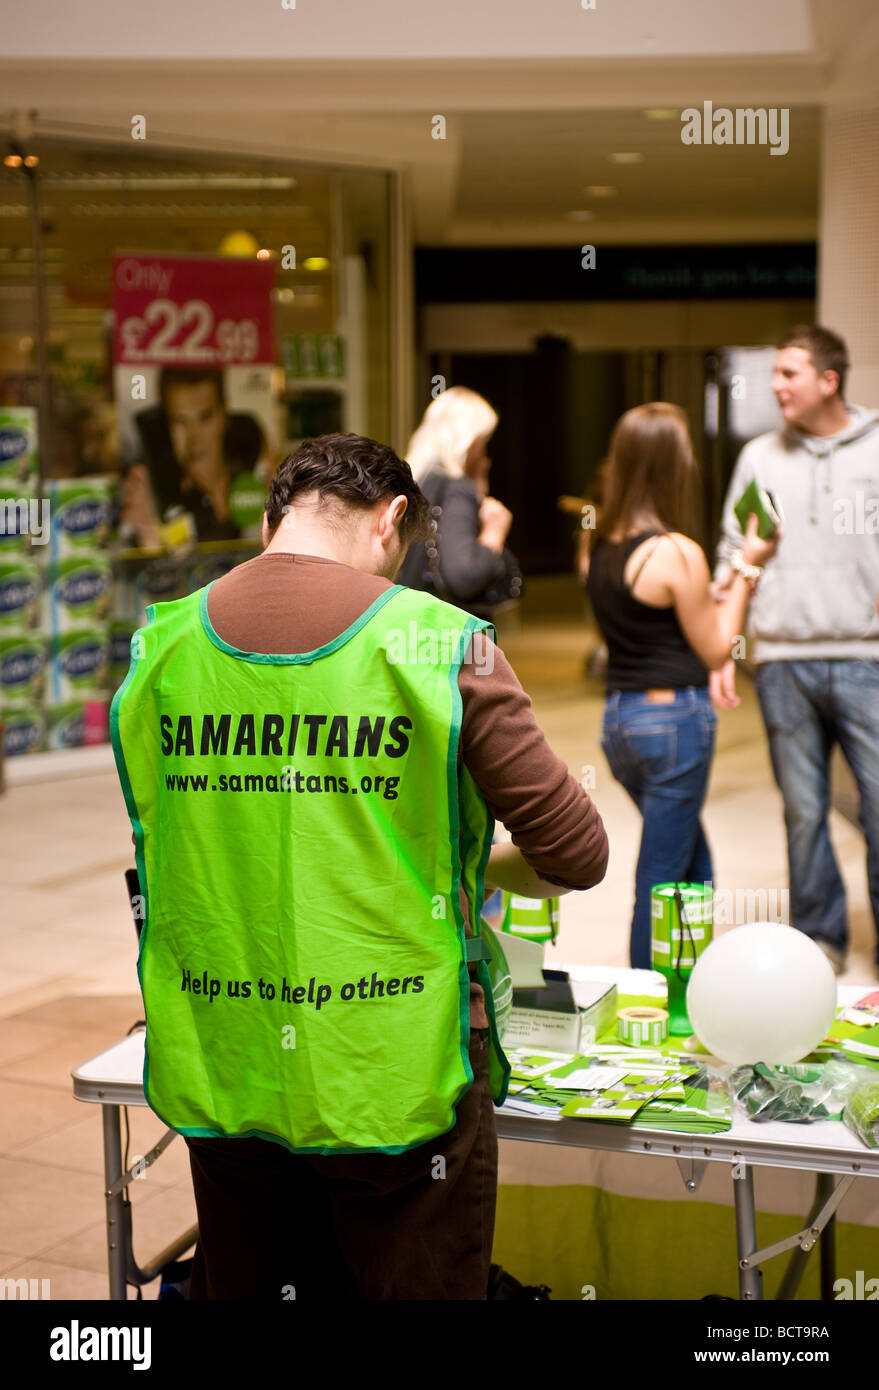 A volunteer from the charity The Samaritans fundraising. - Stock Image